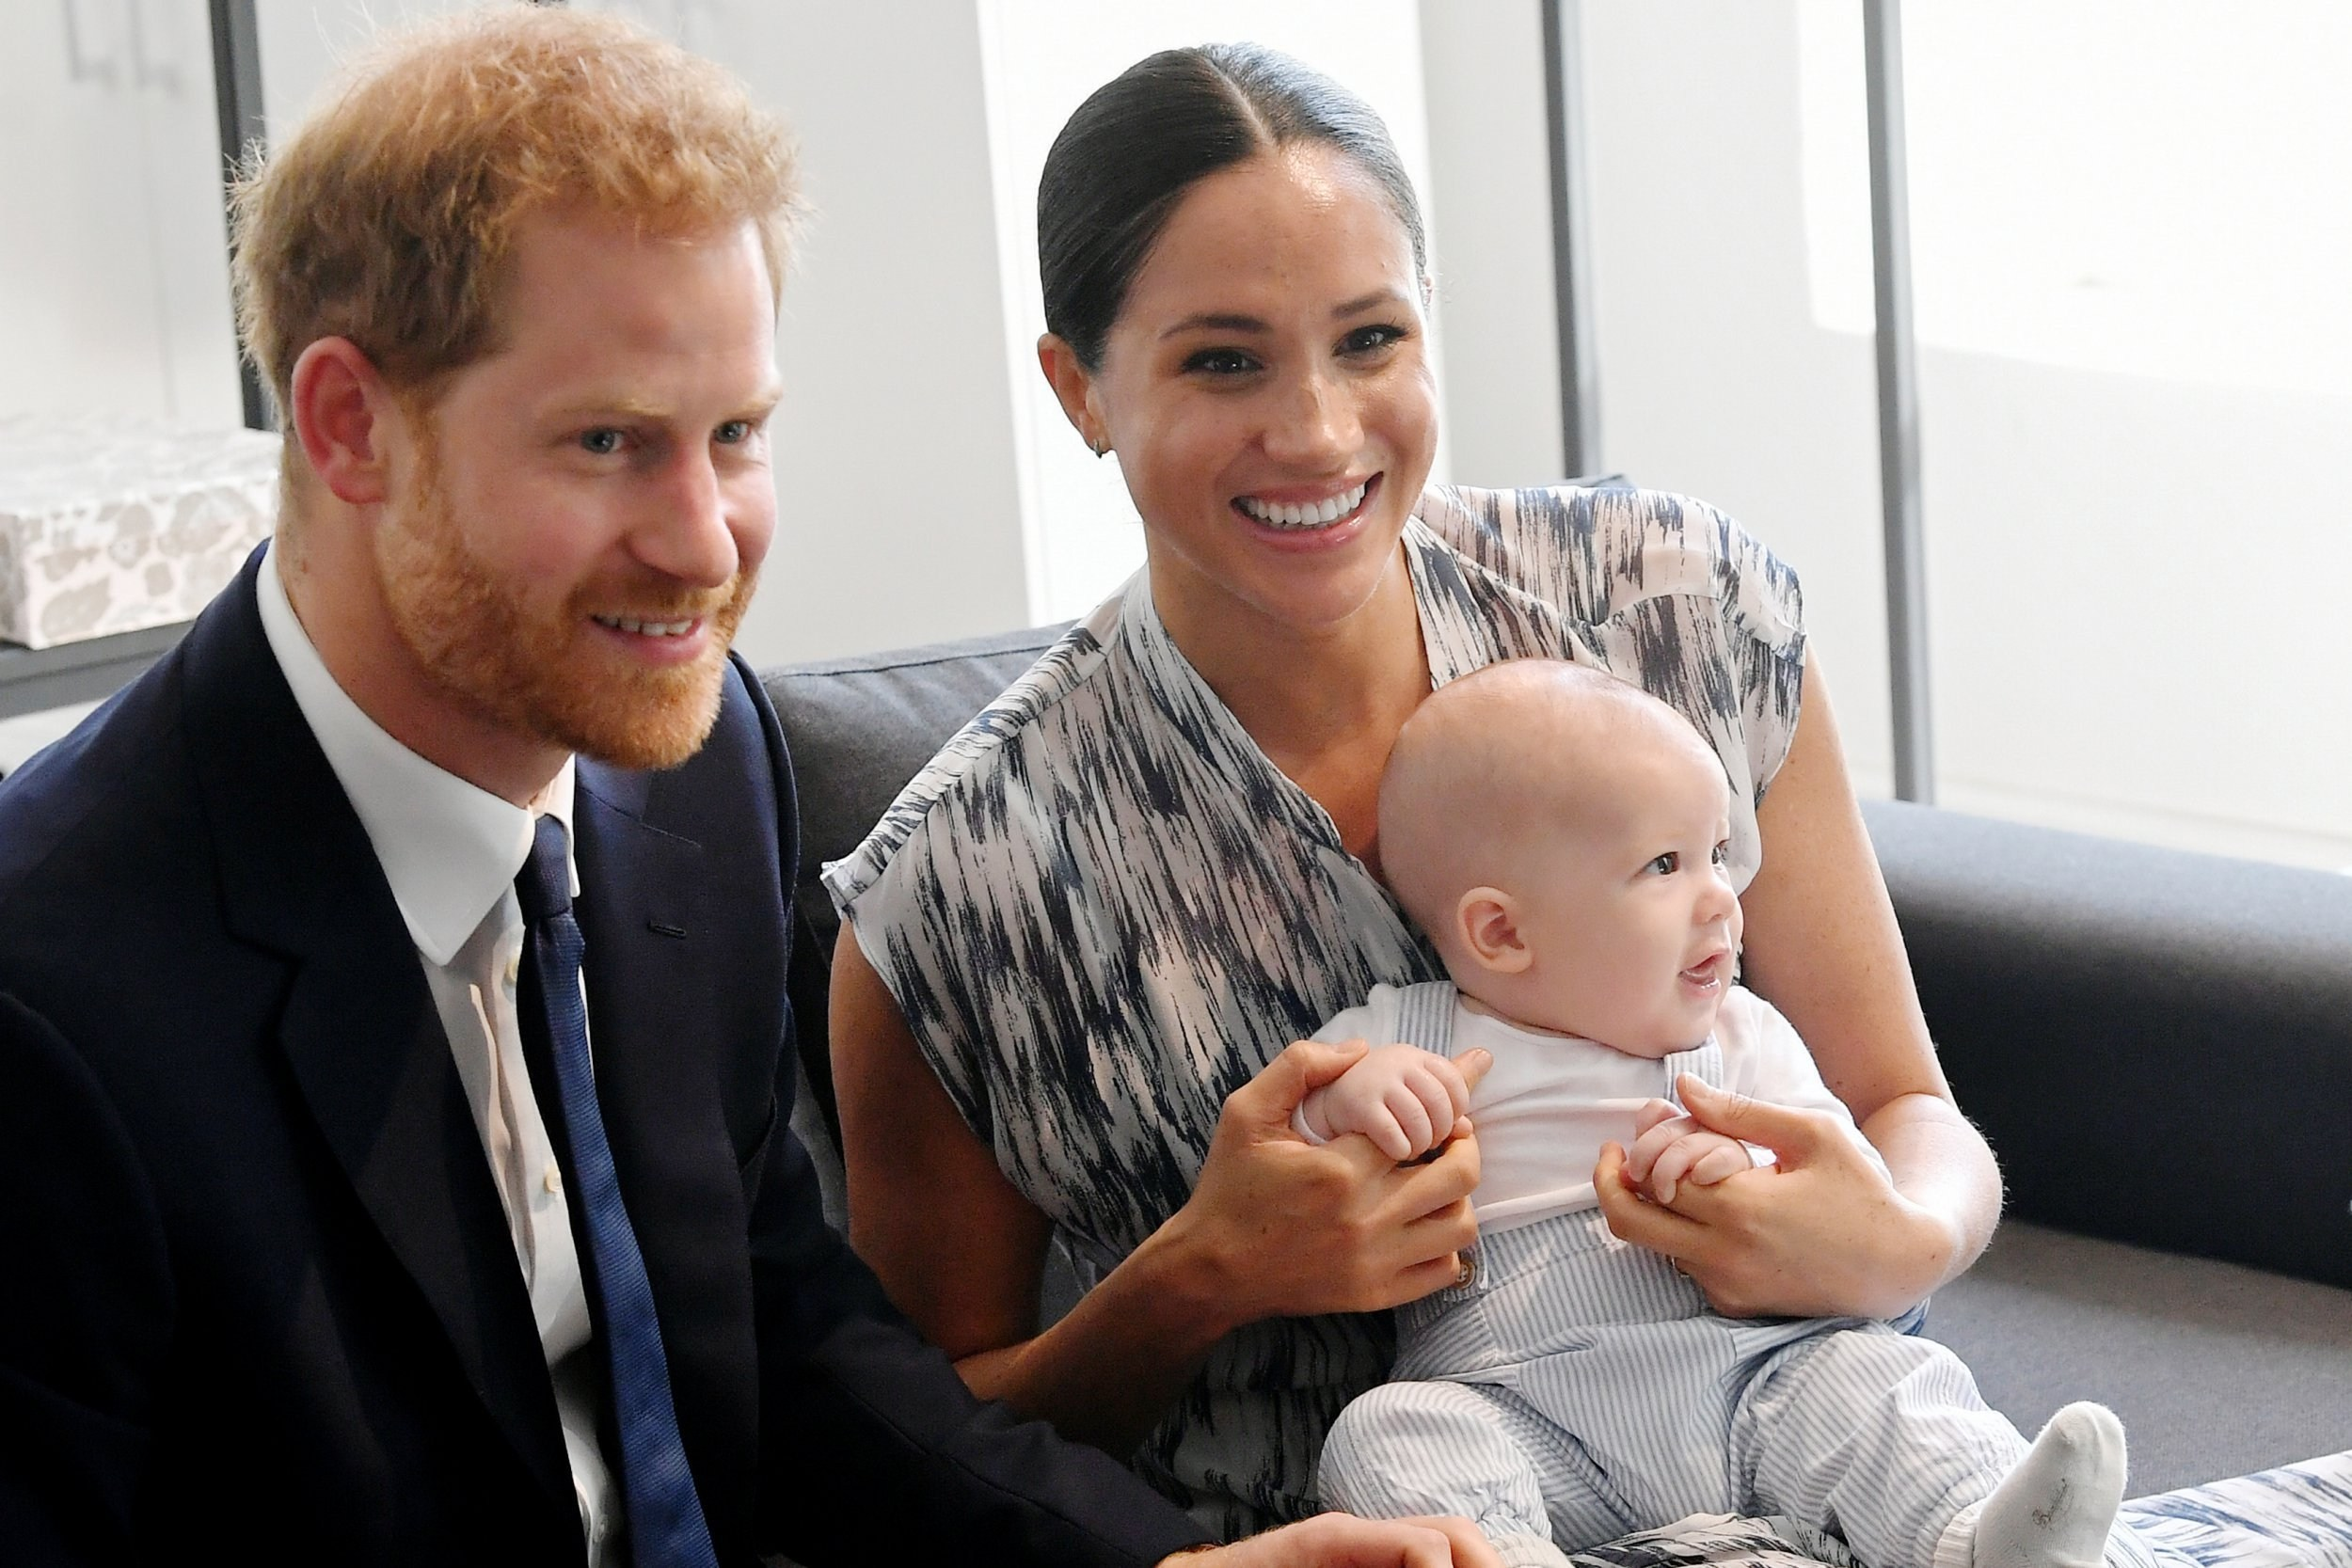 Where are Harry and Meghan living as they celebrate son Archie's 1st birthday?